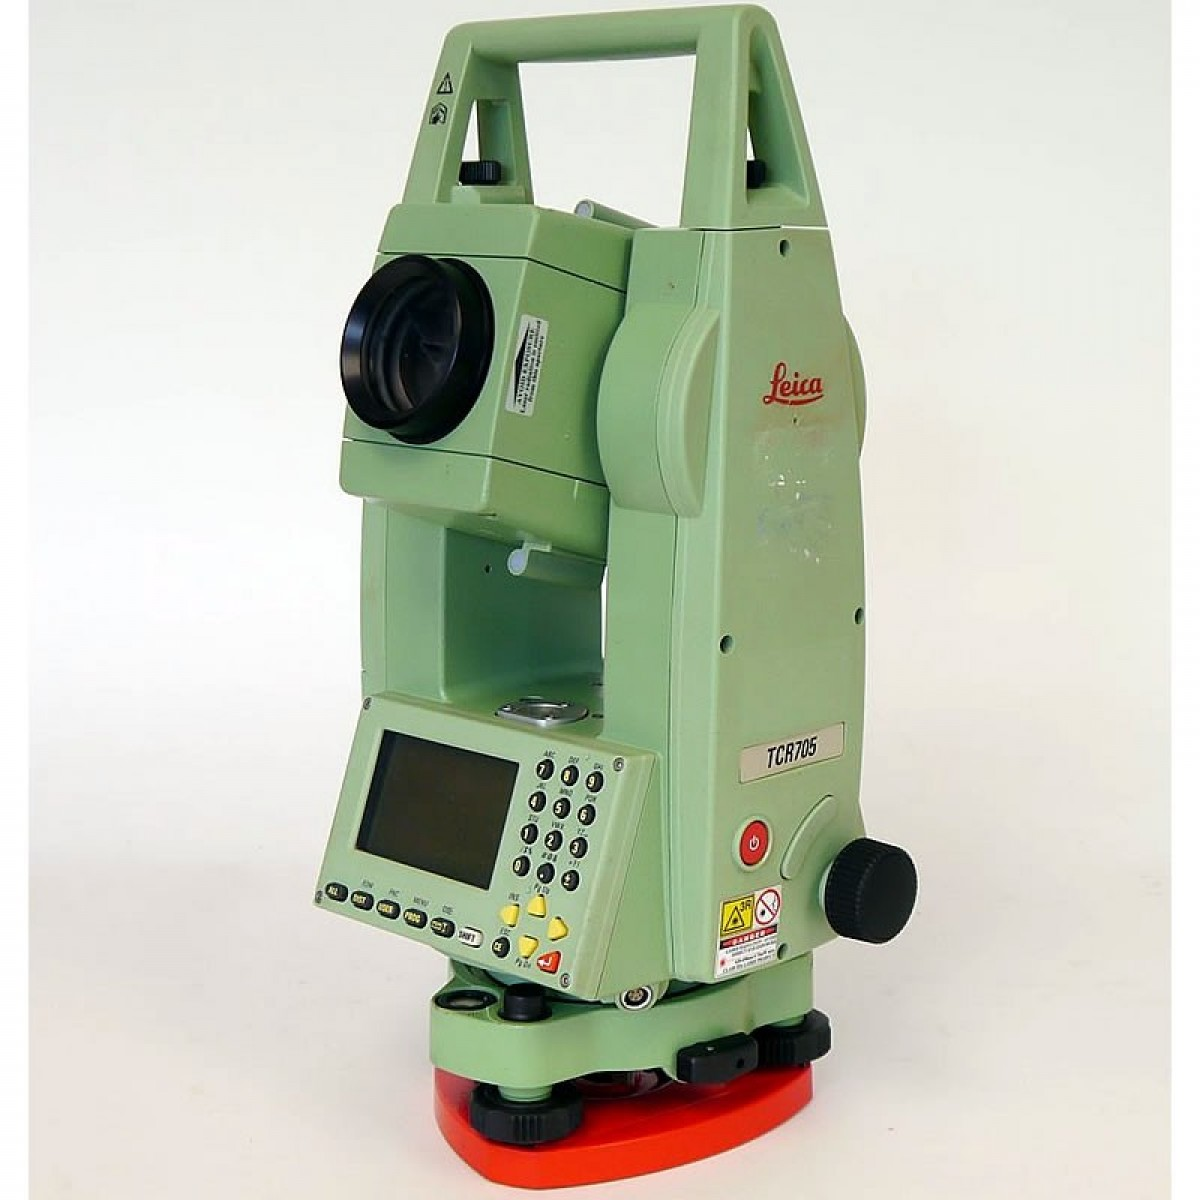 http://maydodachaiphong.com//upload/fckeditor/leica_tcr705_r100_total_station_2.jpg